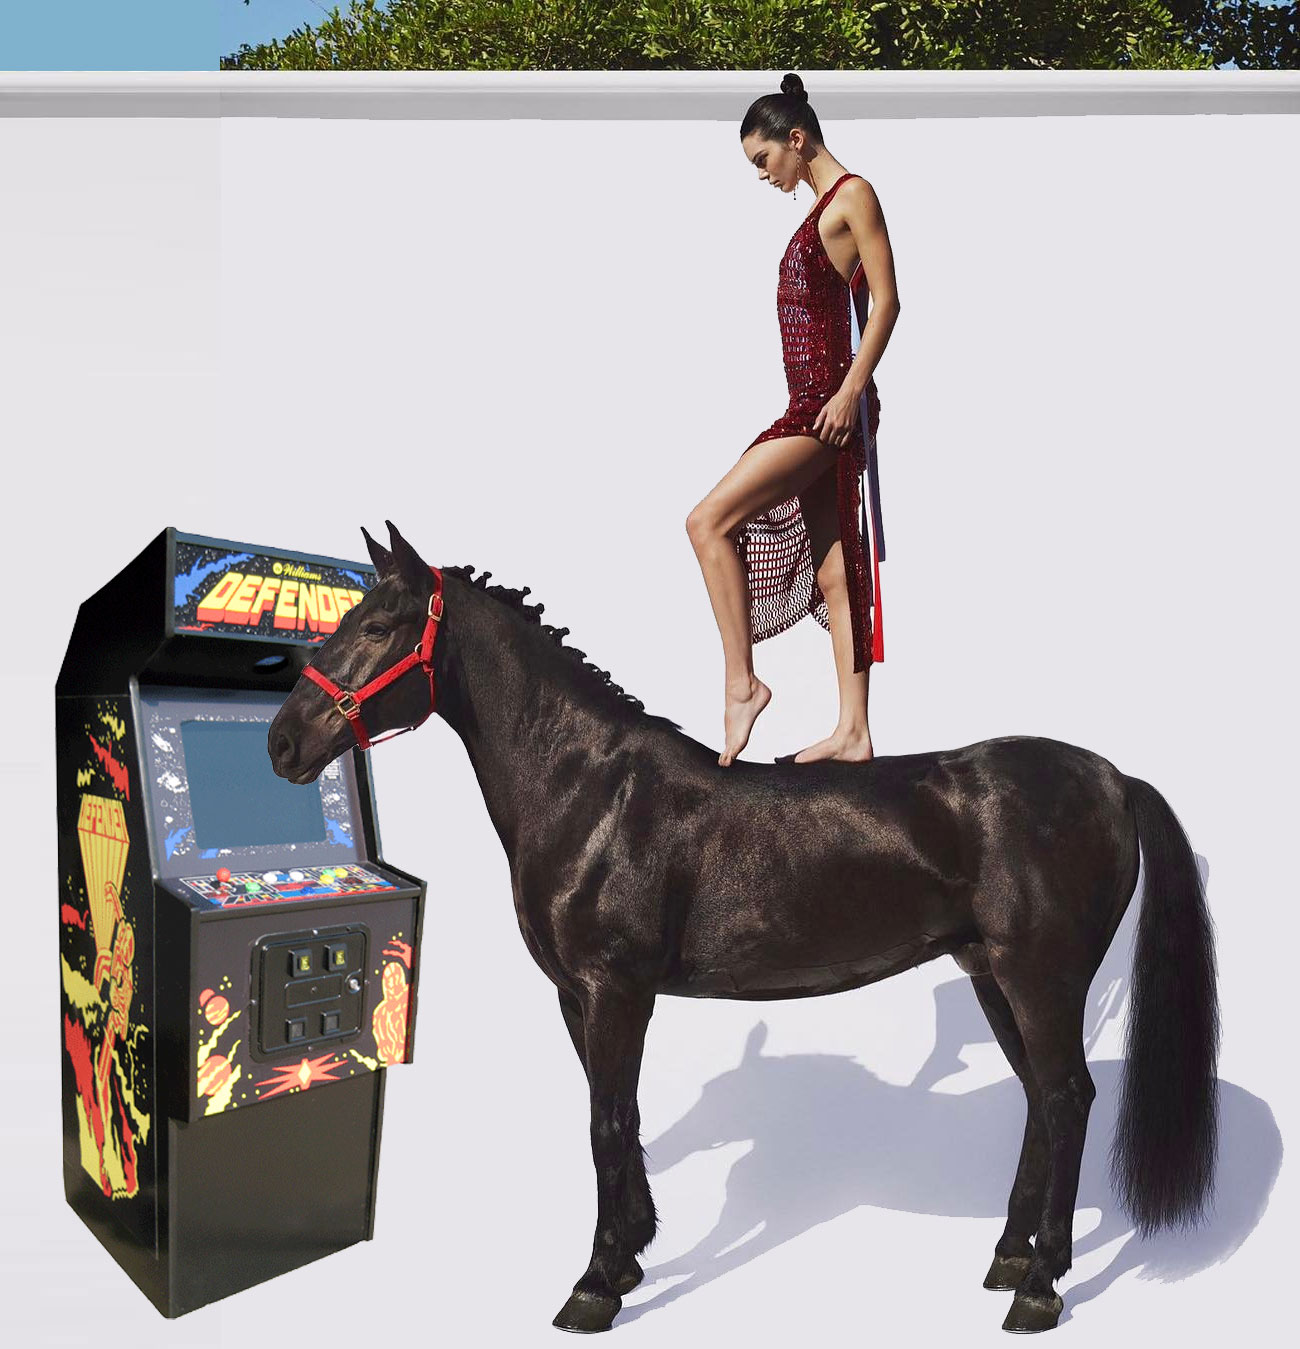 Kendall Jenner standing on a horse with Defender